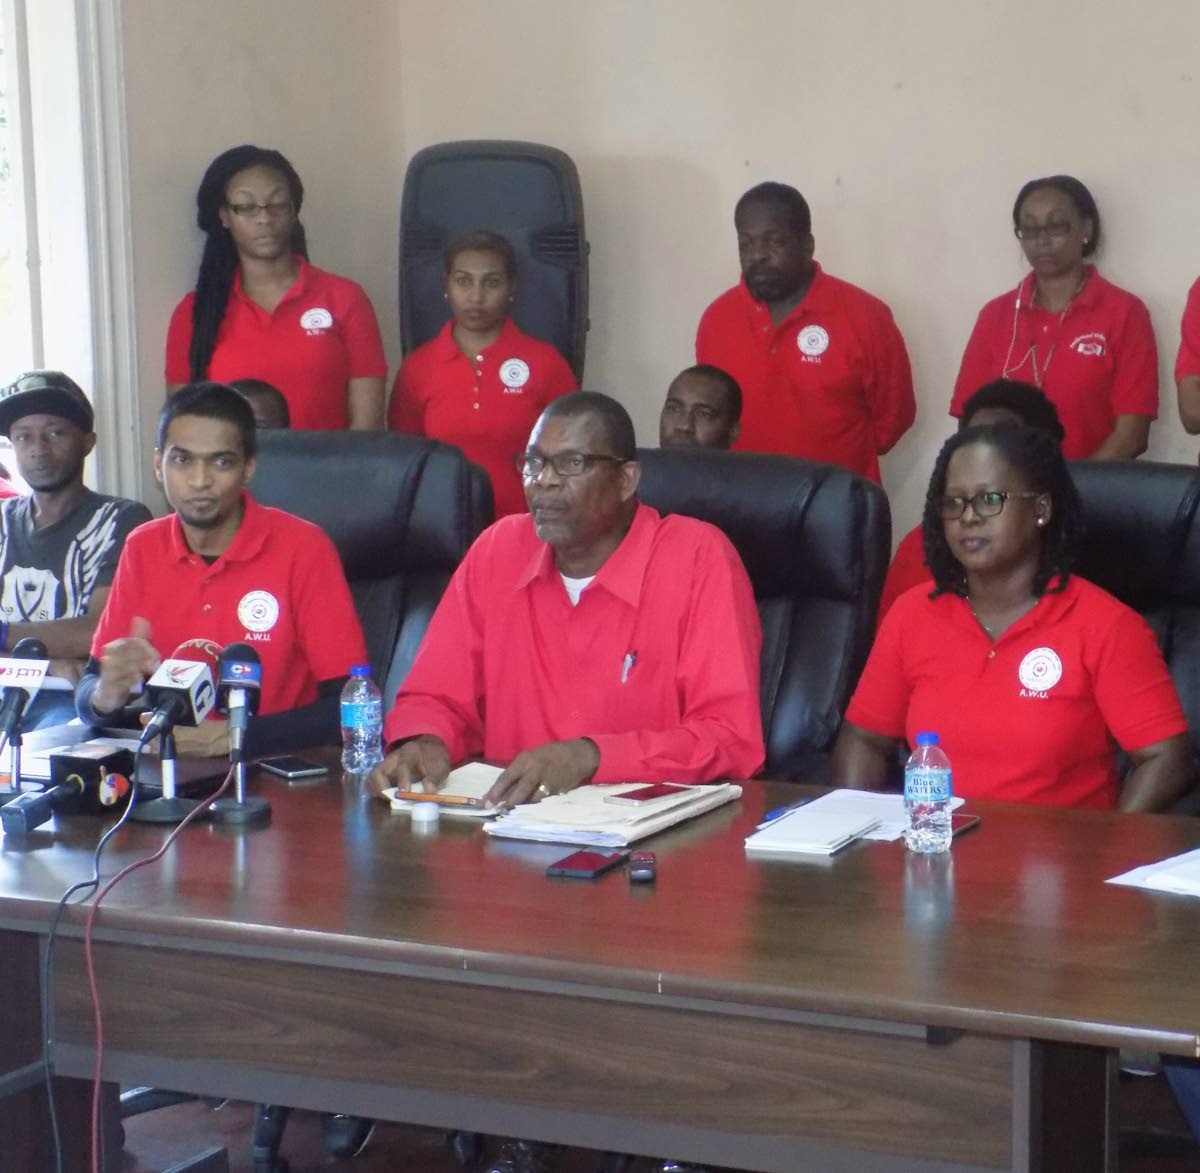 FILE PHOTO: President General of the Amalgamated Workers Union Michael Prentice and General Secretary Cassandra Tommy-Dabreo, speak to reporters during a press conference at the Union's headquarters in Port of Spain.